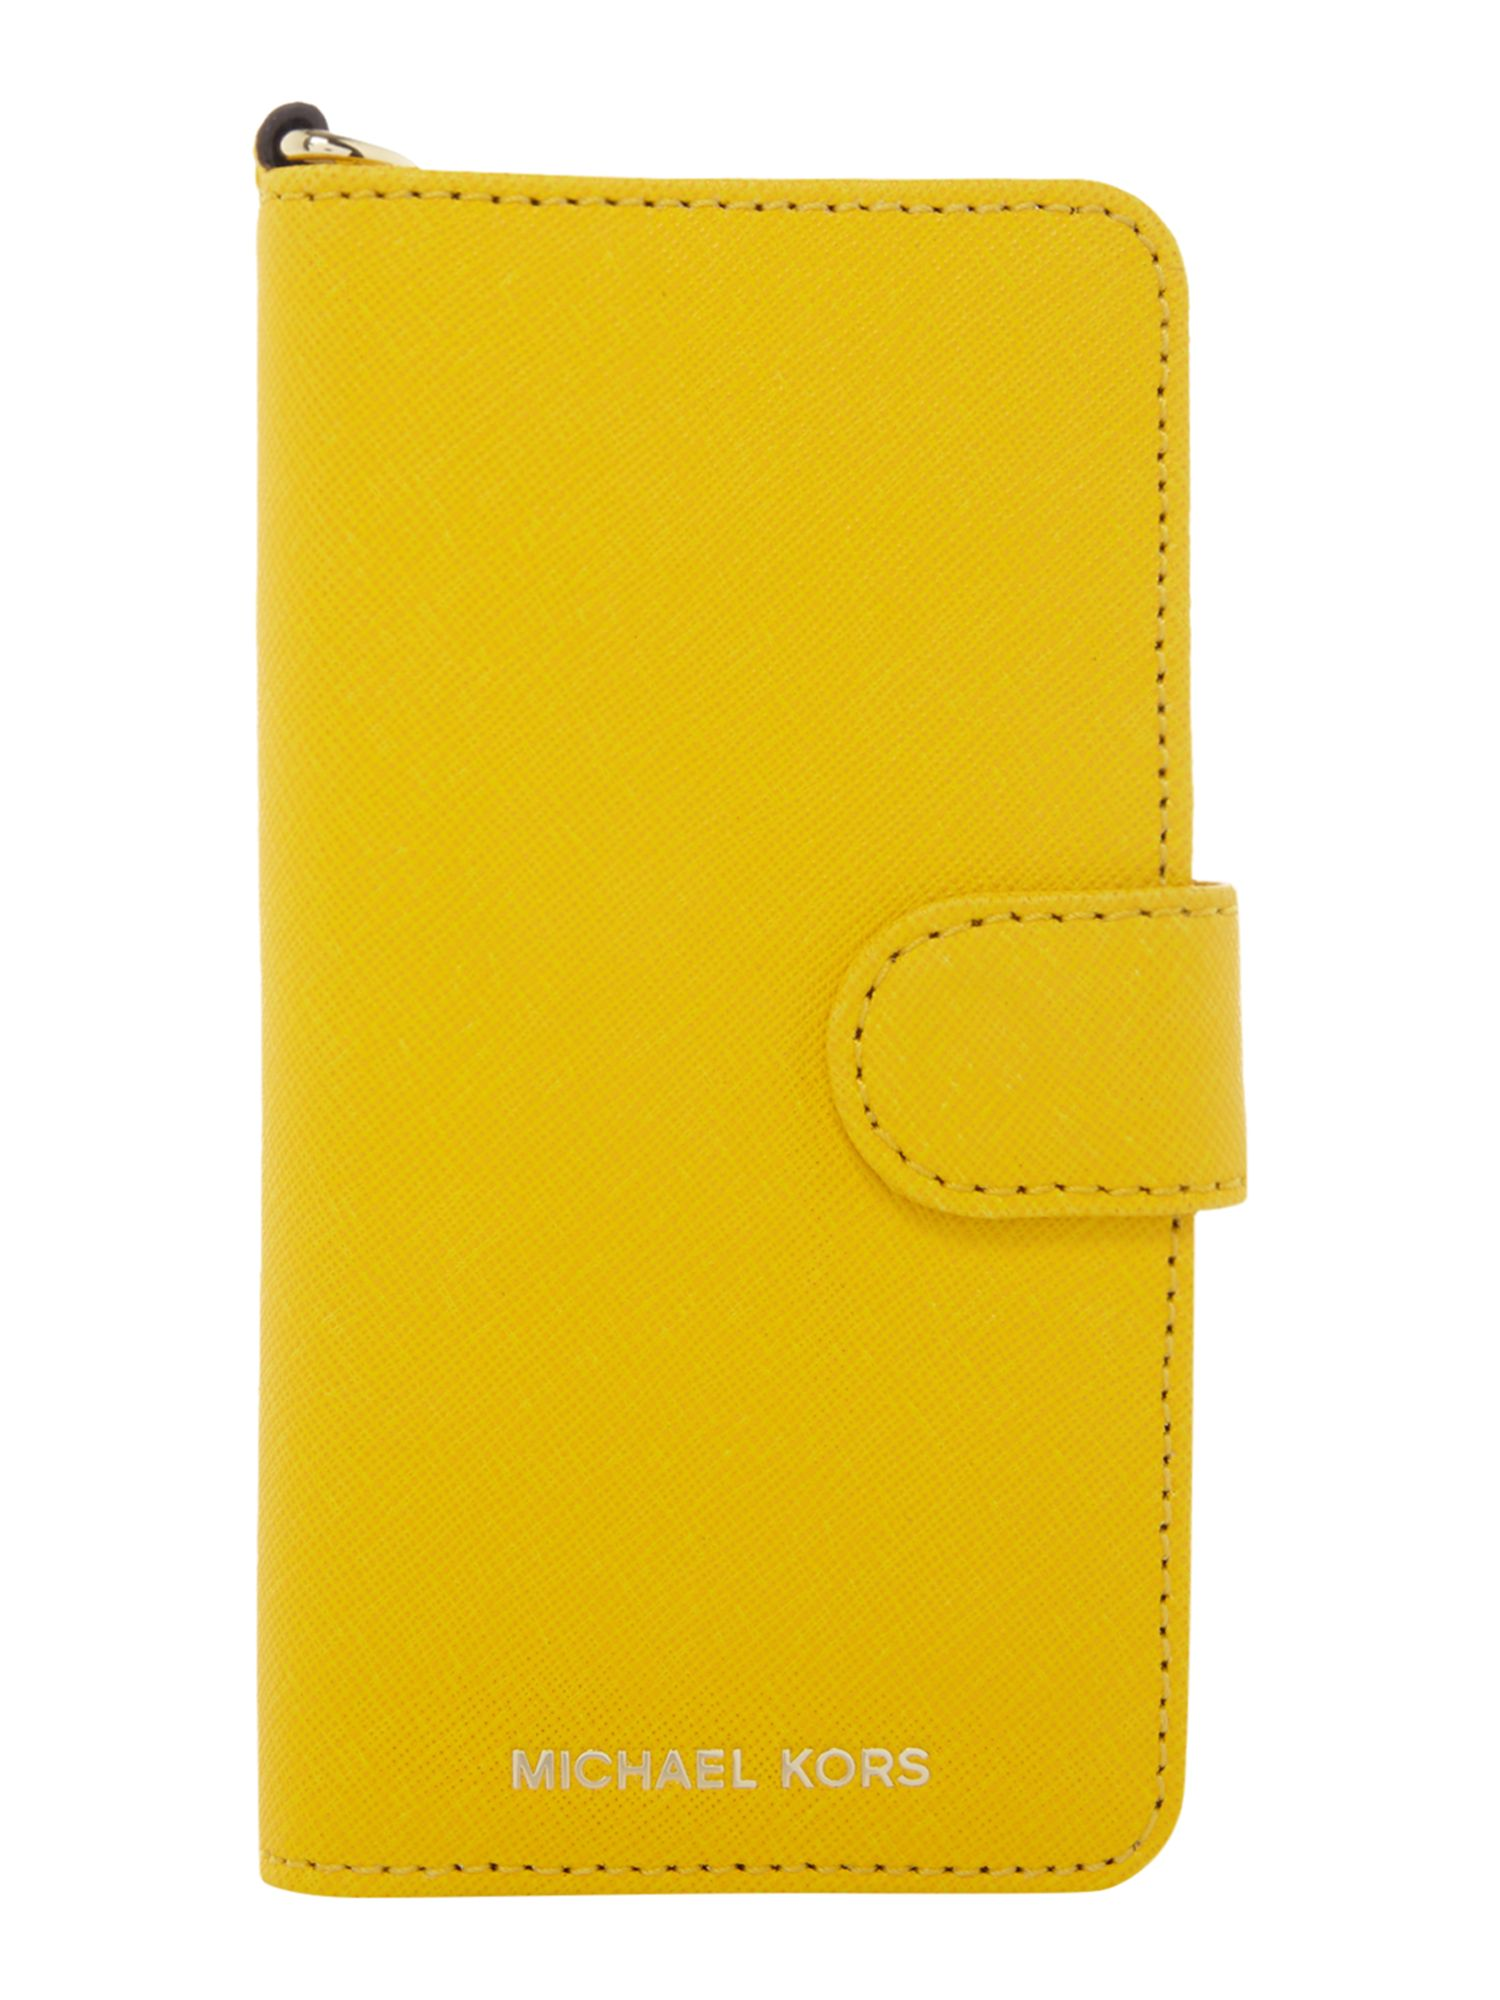 Michael Kors Iphone 7 phone cover, Yellow.